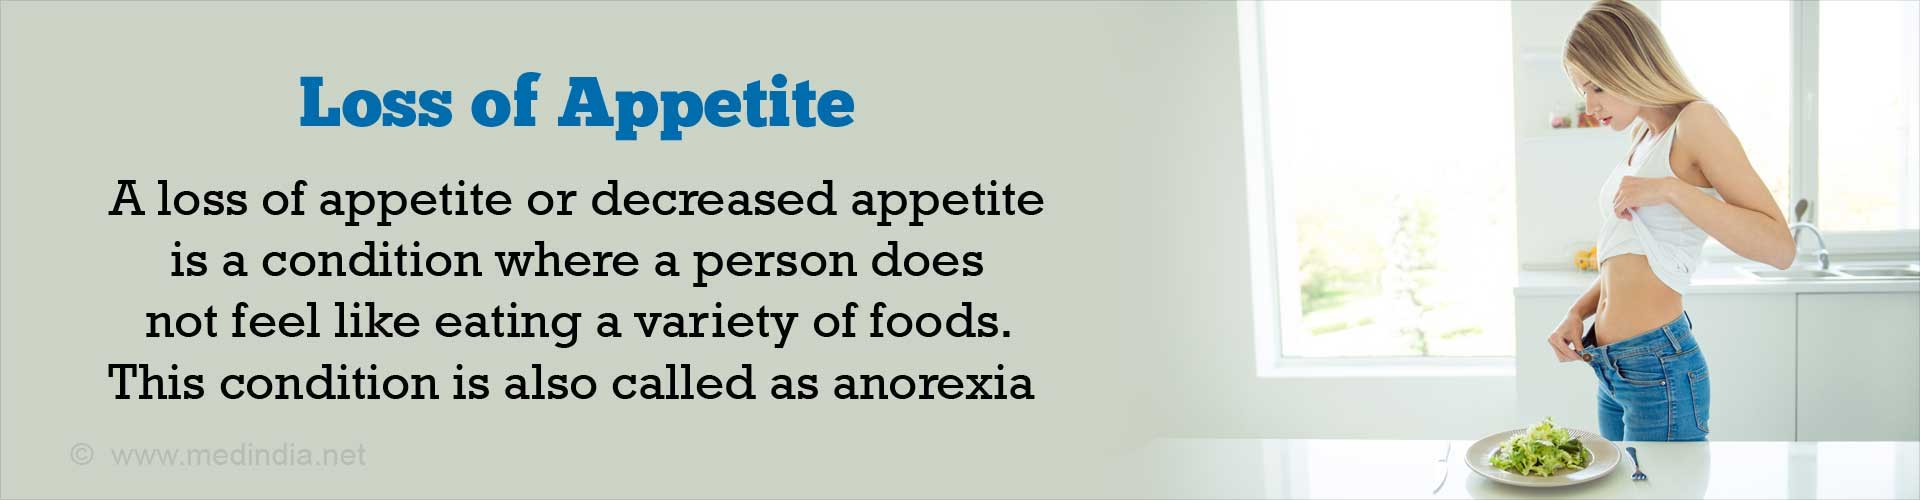 Loss of Appetite or Decreased Appetite - Symptom Evaluation